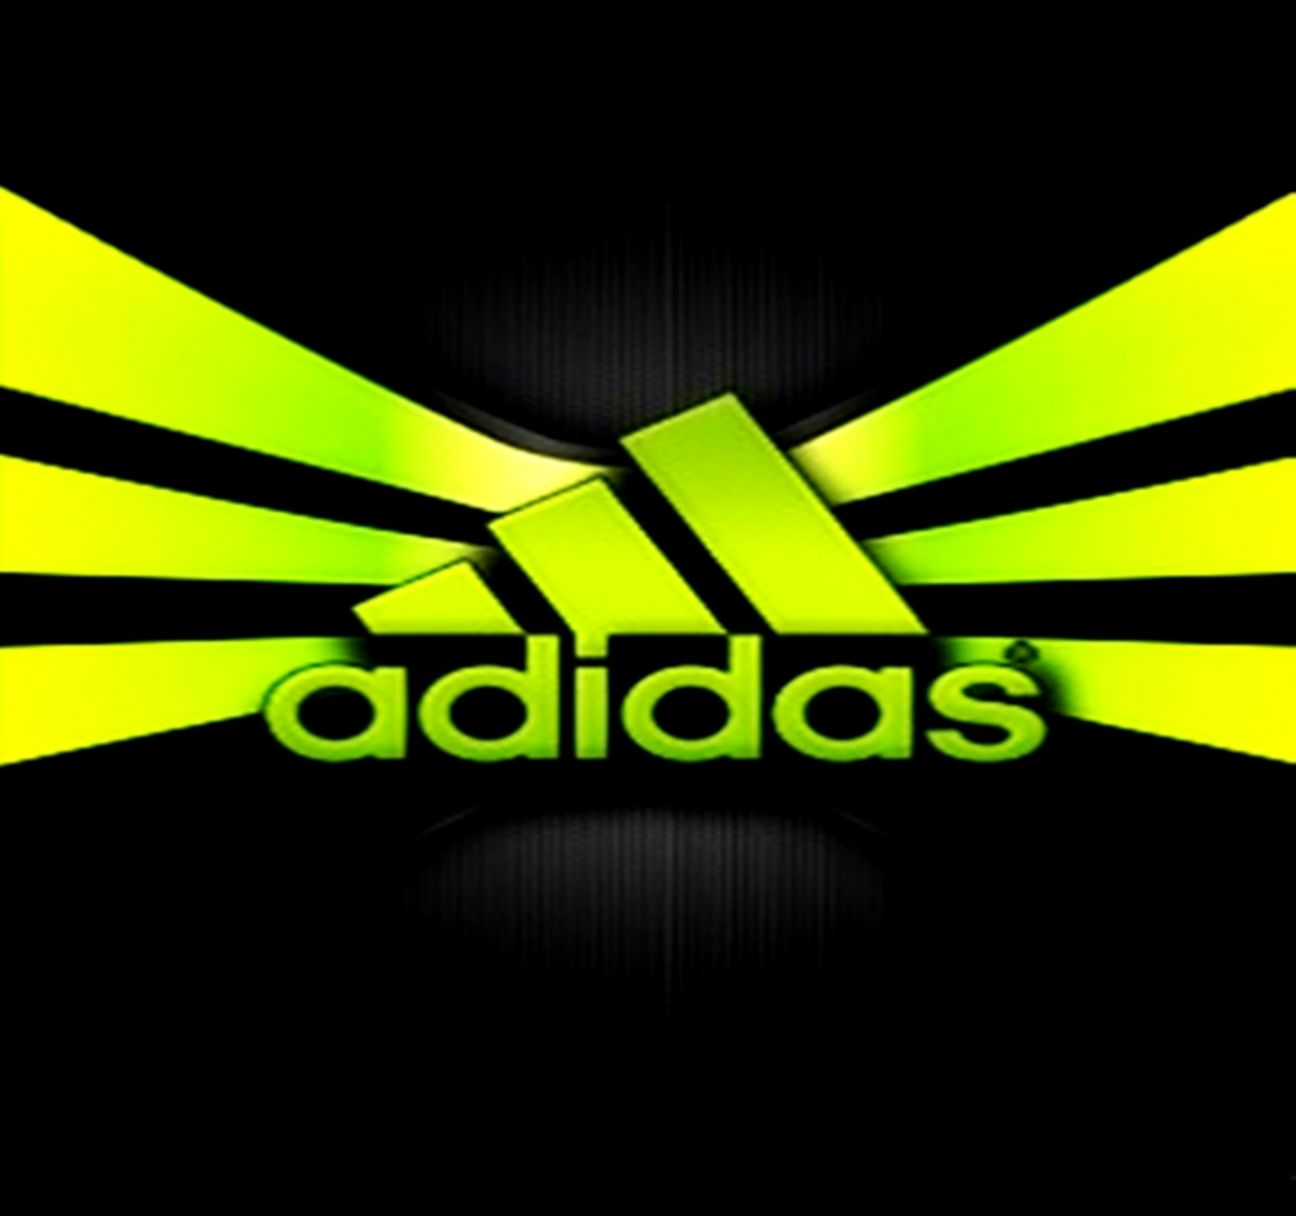 Green Adidas Logo Wallpapers Hd Pixell Wallpapers